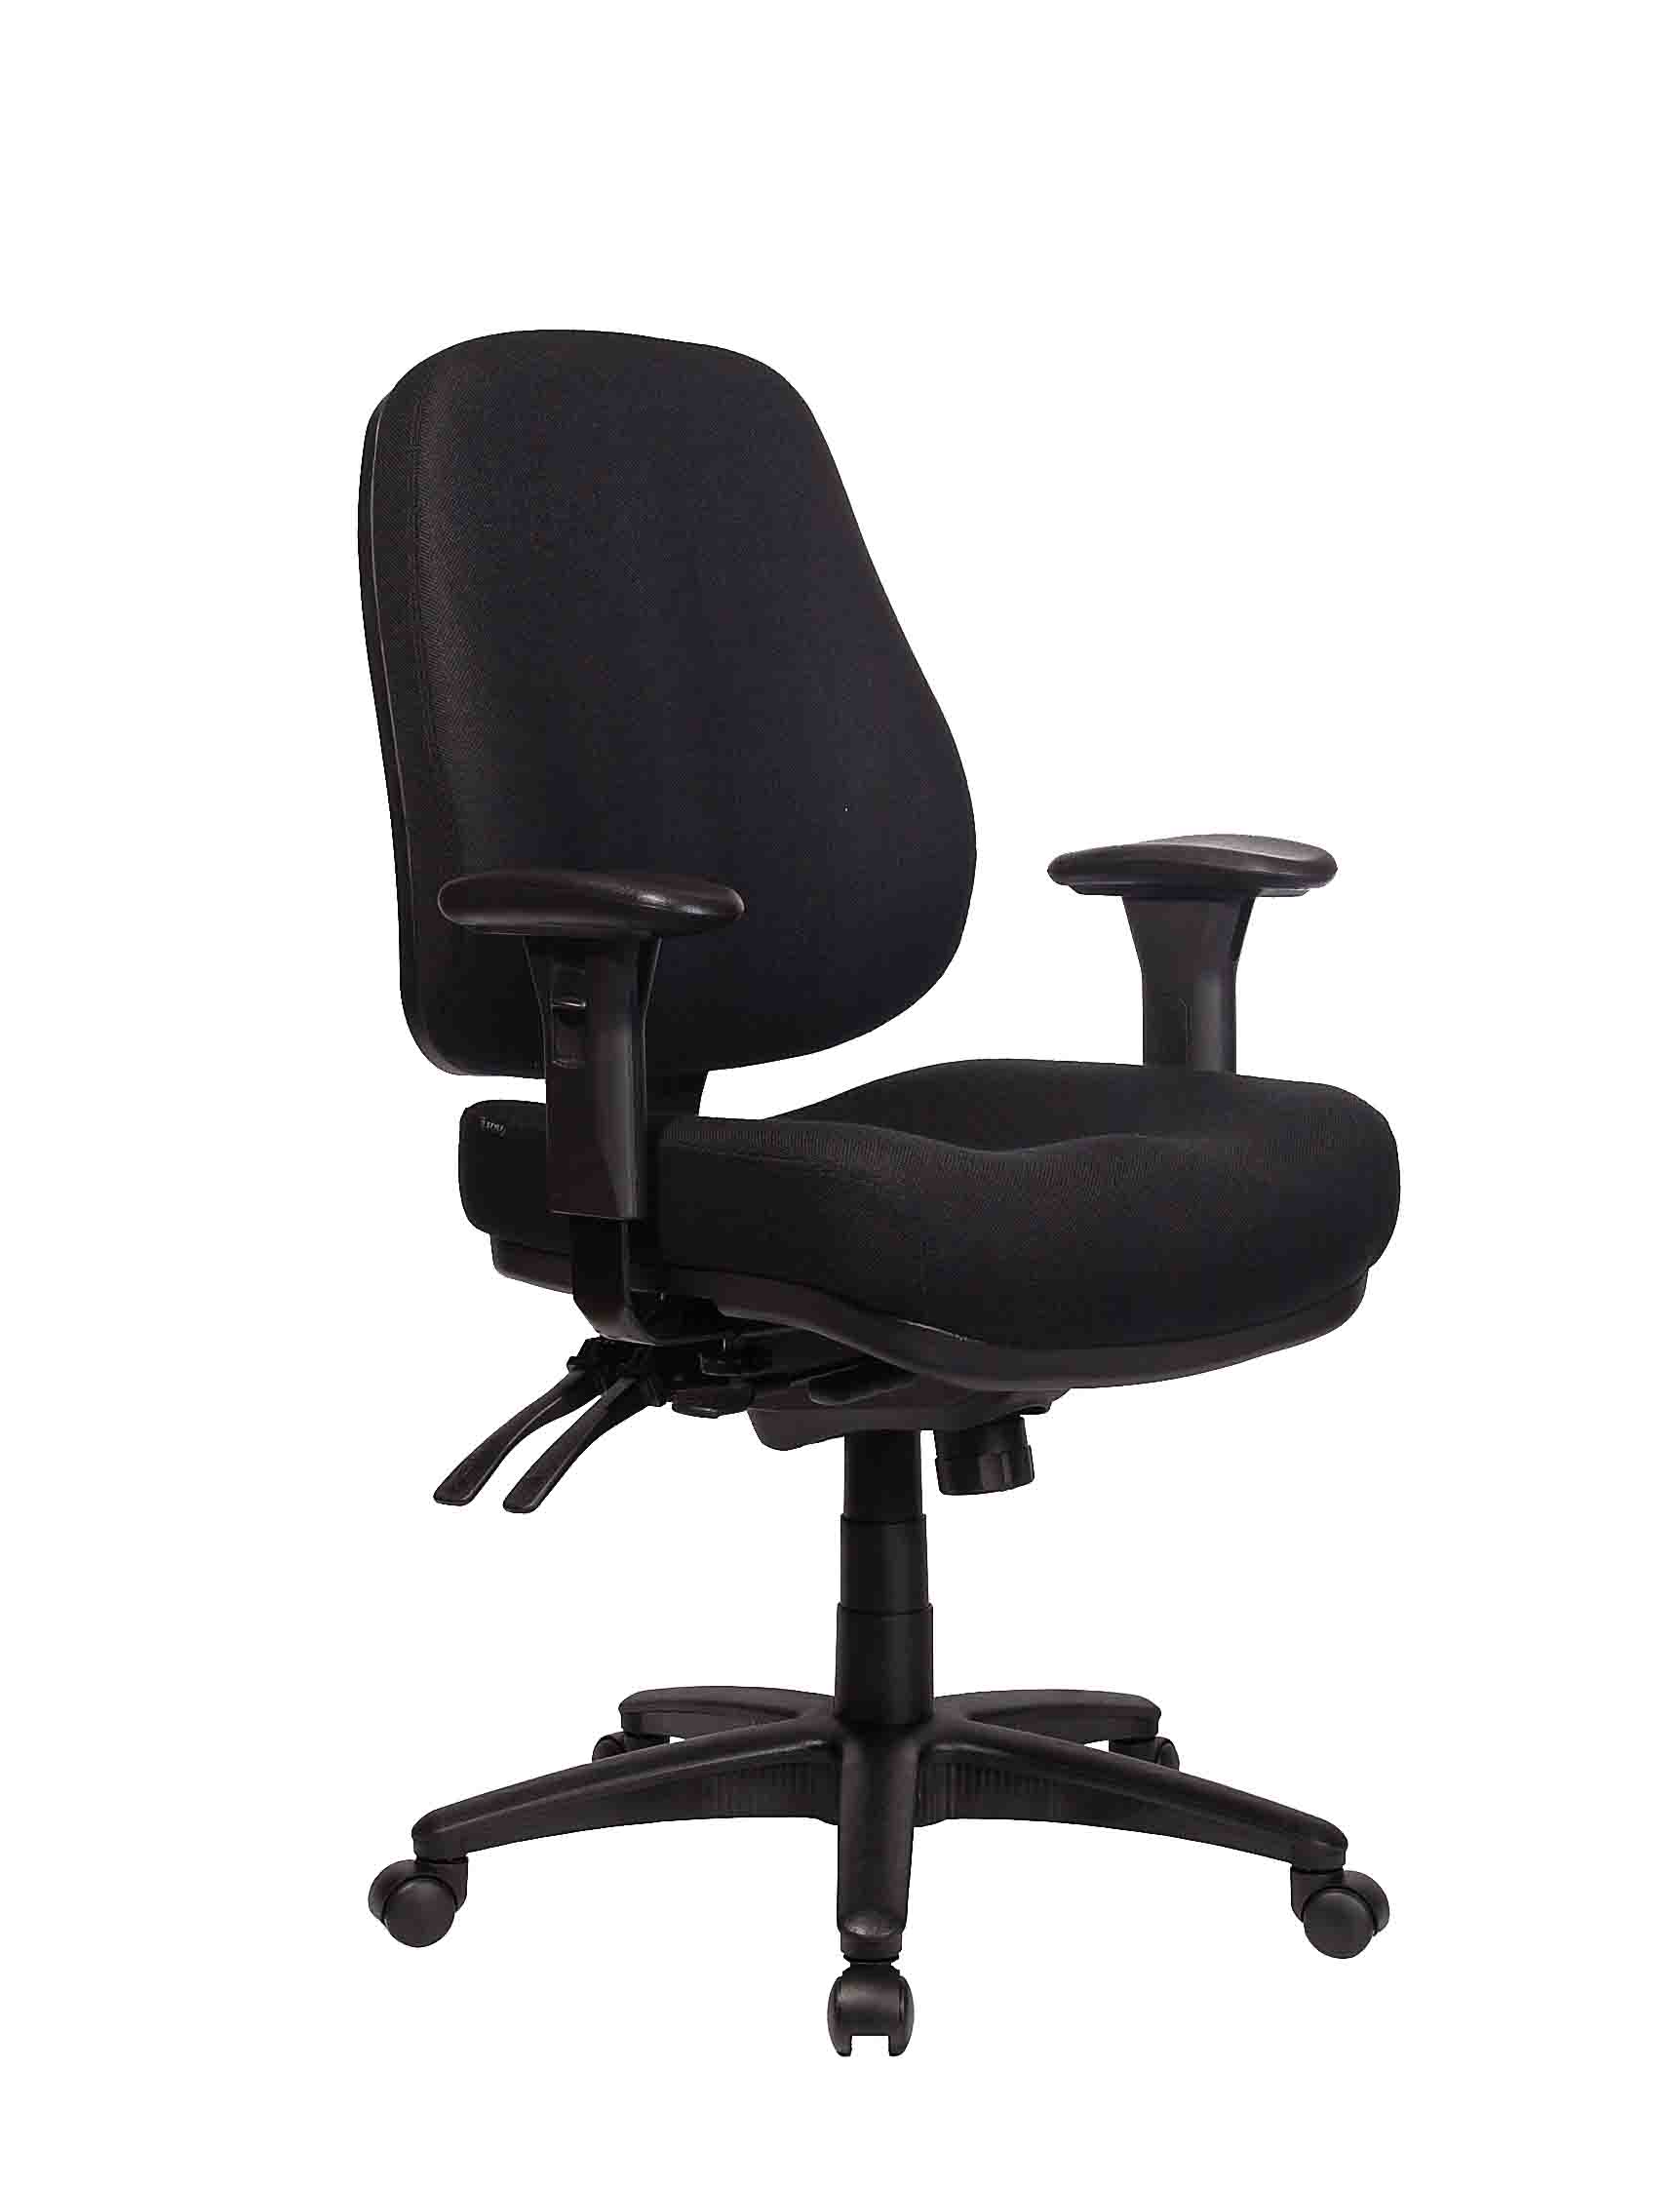 office chair johor upholstered rocking for nursery whithams furniture